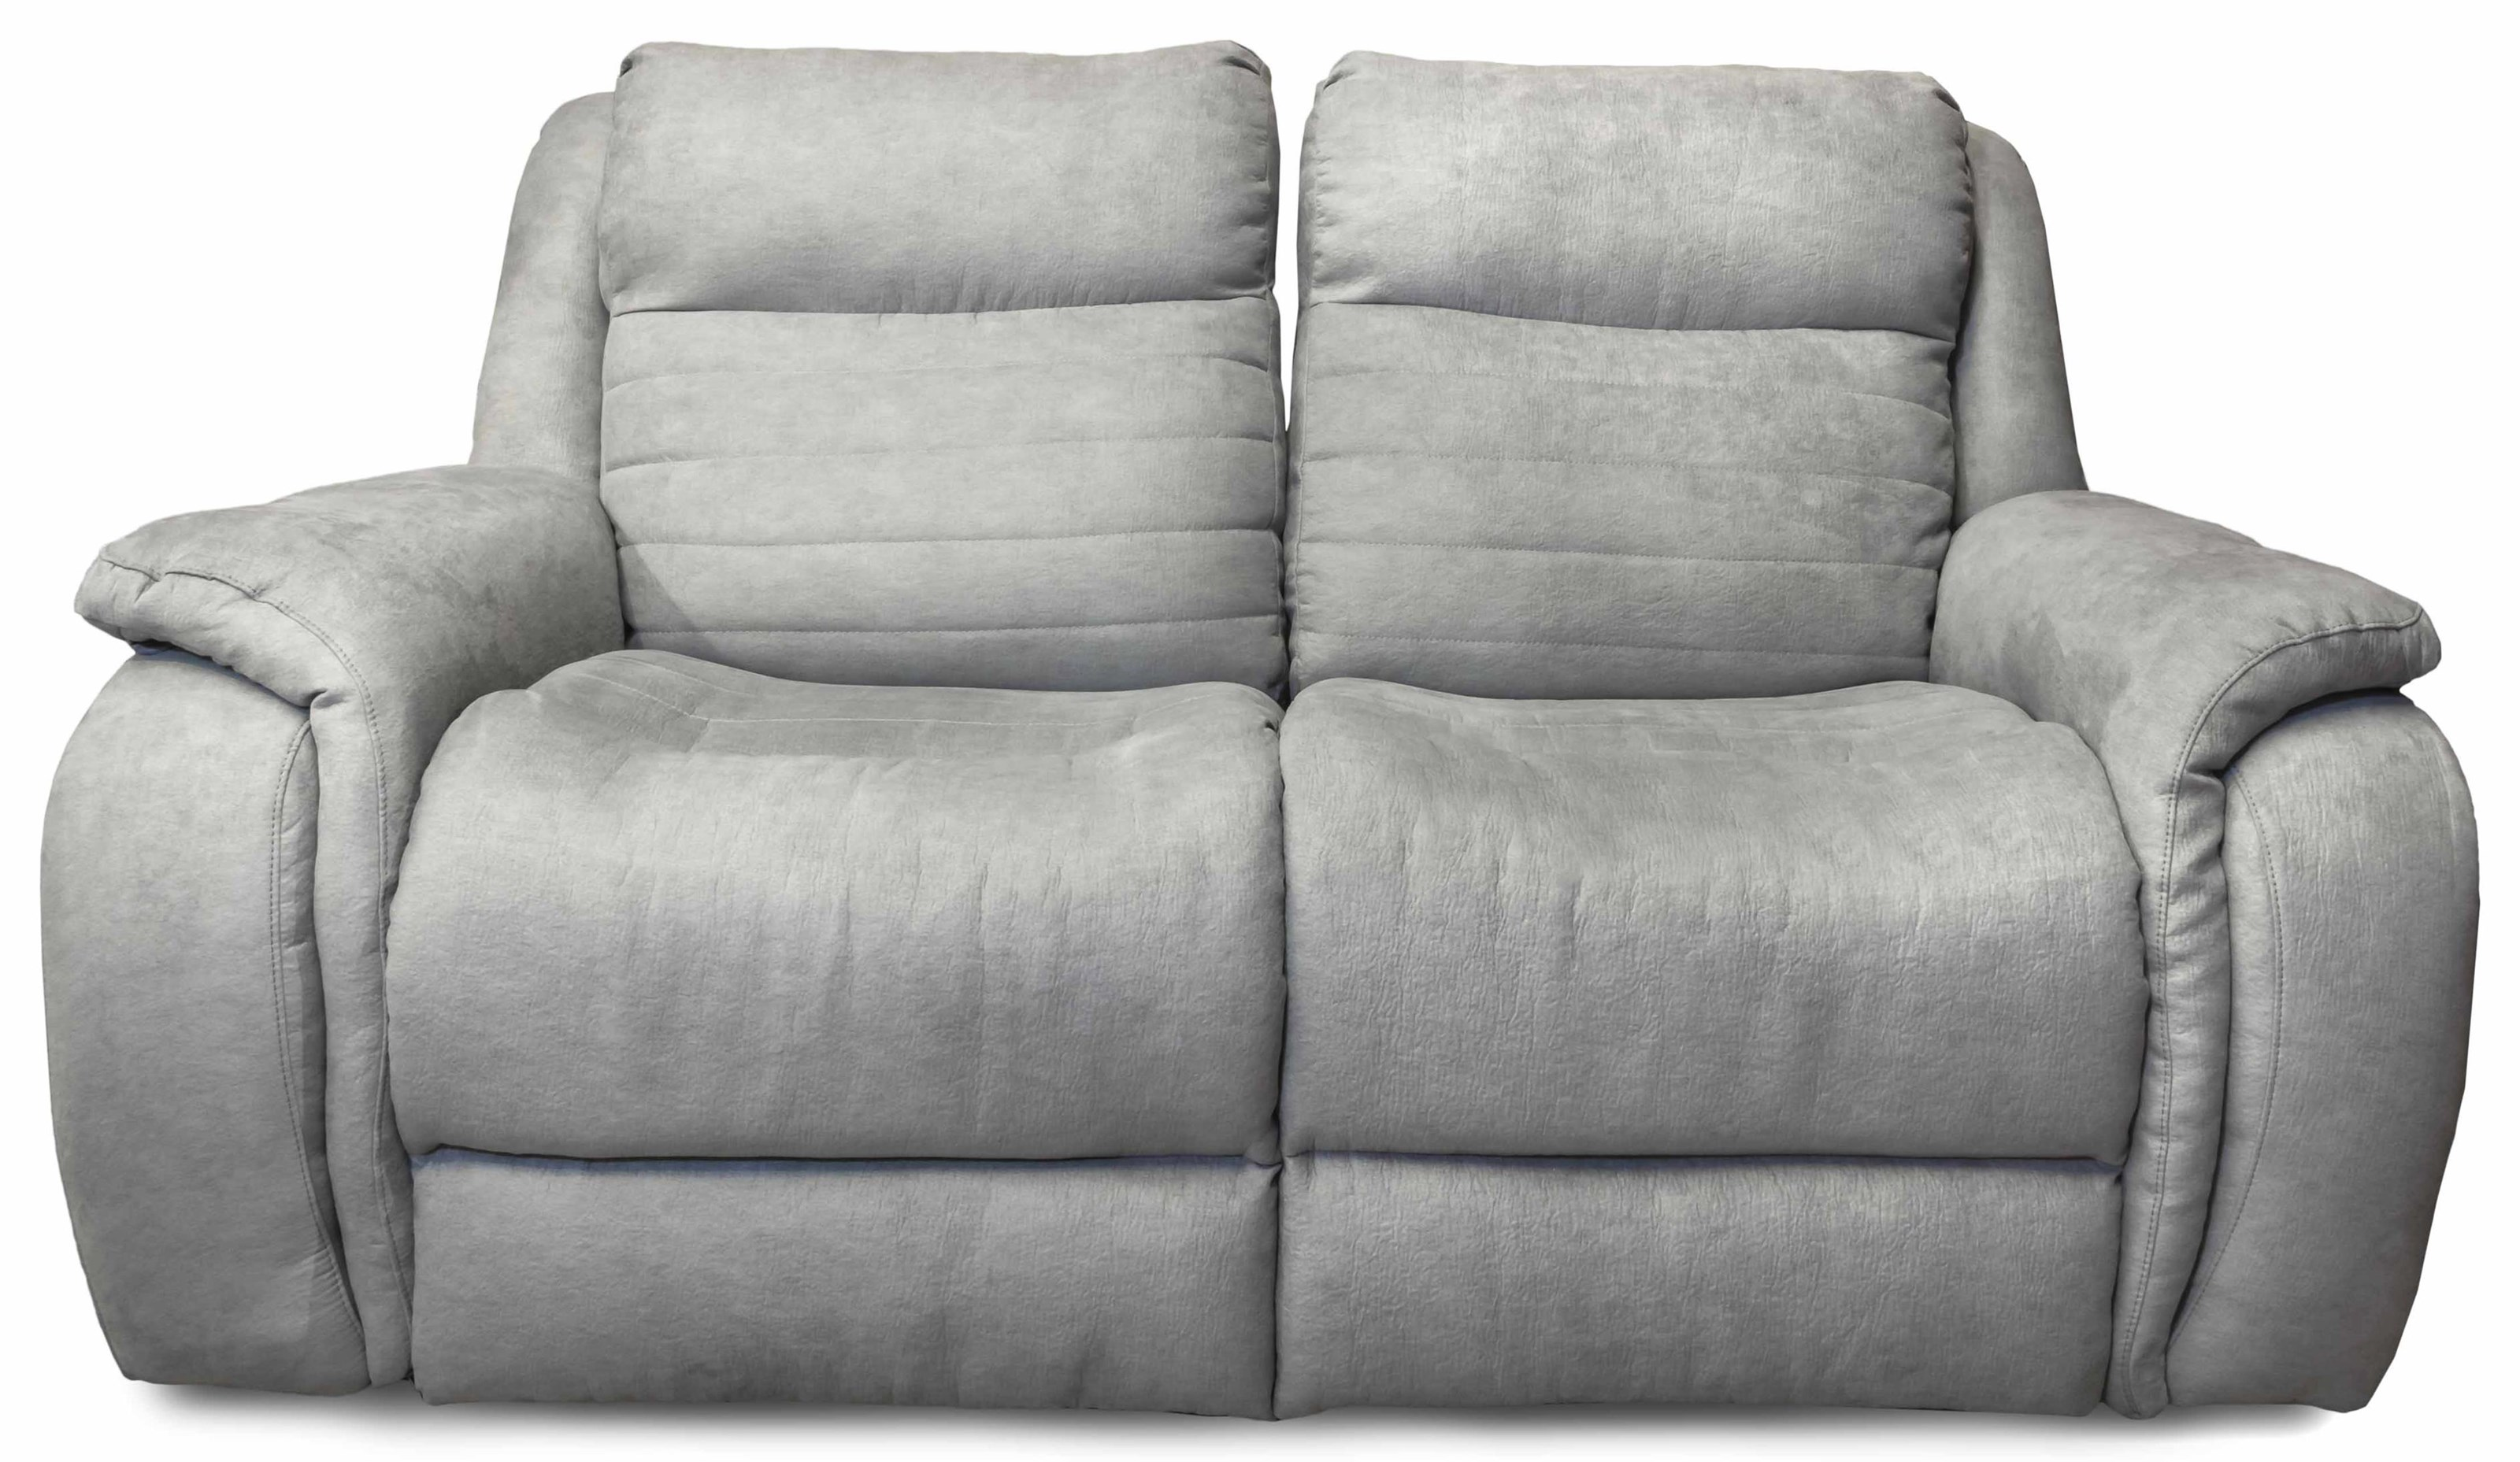 Kipling Double Reclining Power Headrest Loveseat by Design to Recline at Rotmans